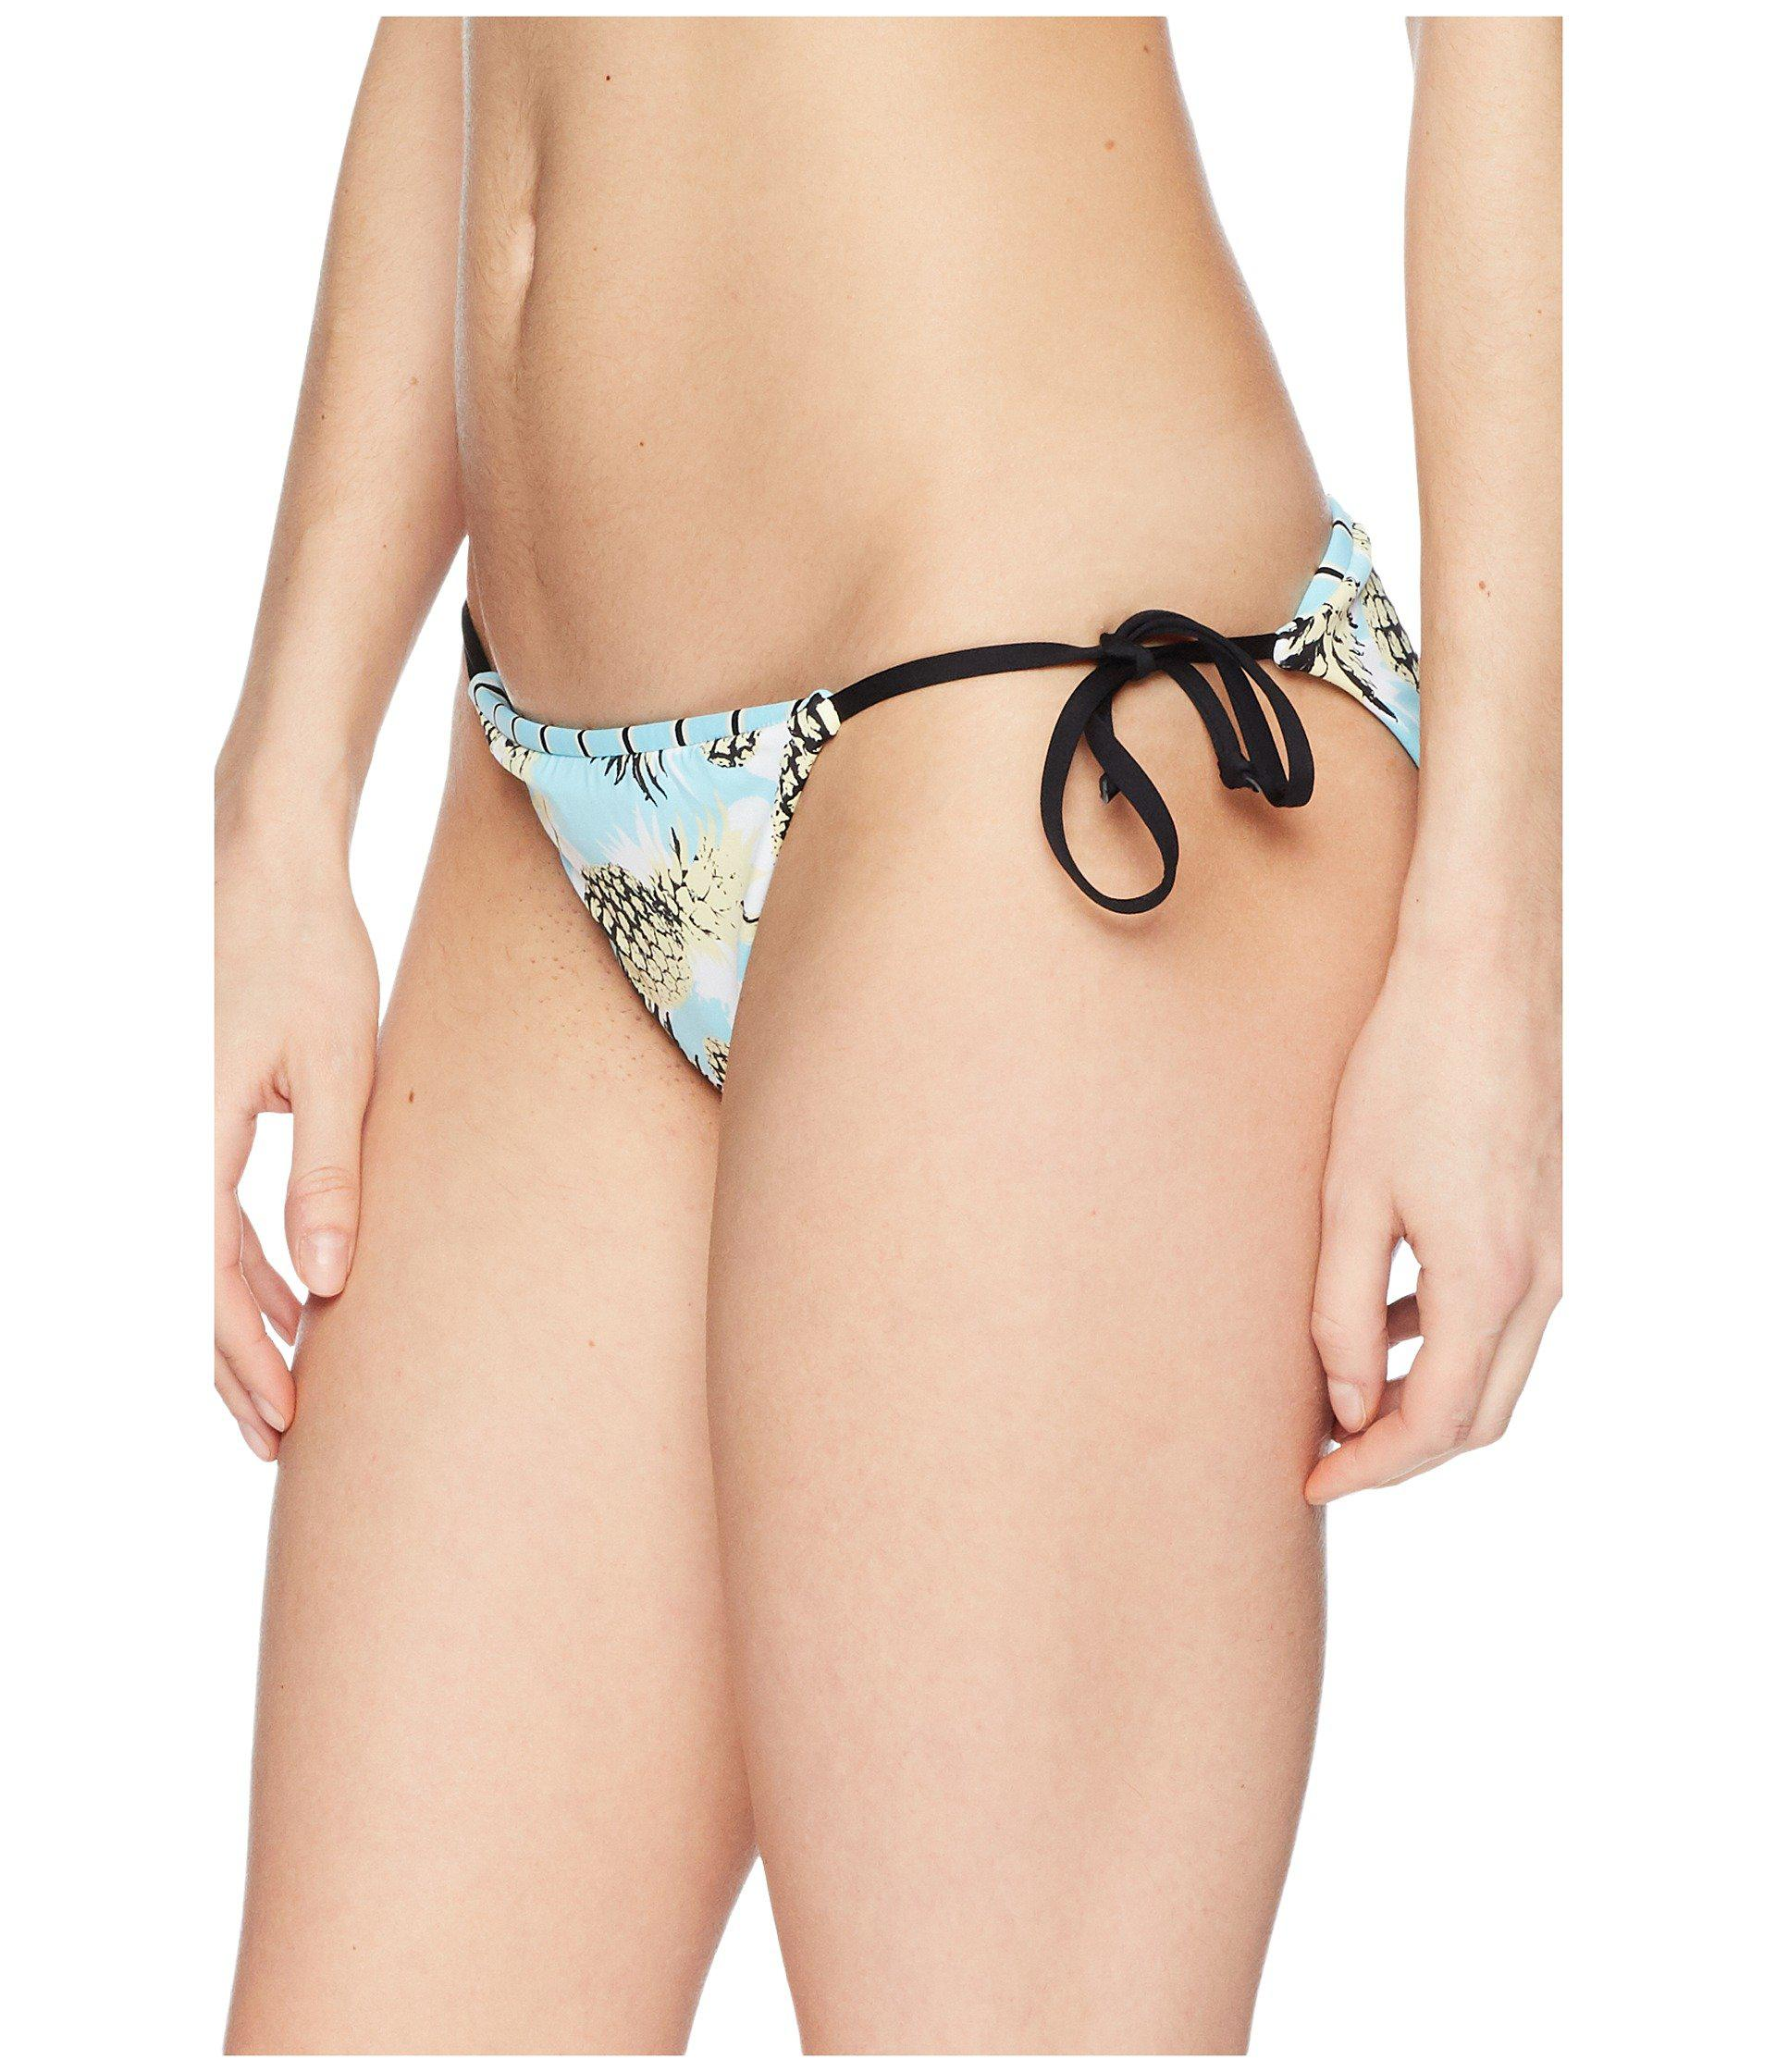 Lyst - The Bikini Lab Pineapple Playa Reversible String Tie Hipster Bottom  - Save 7% 37260b8fa